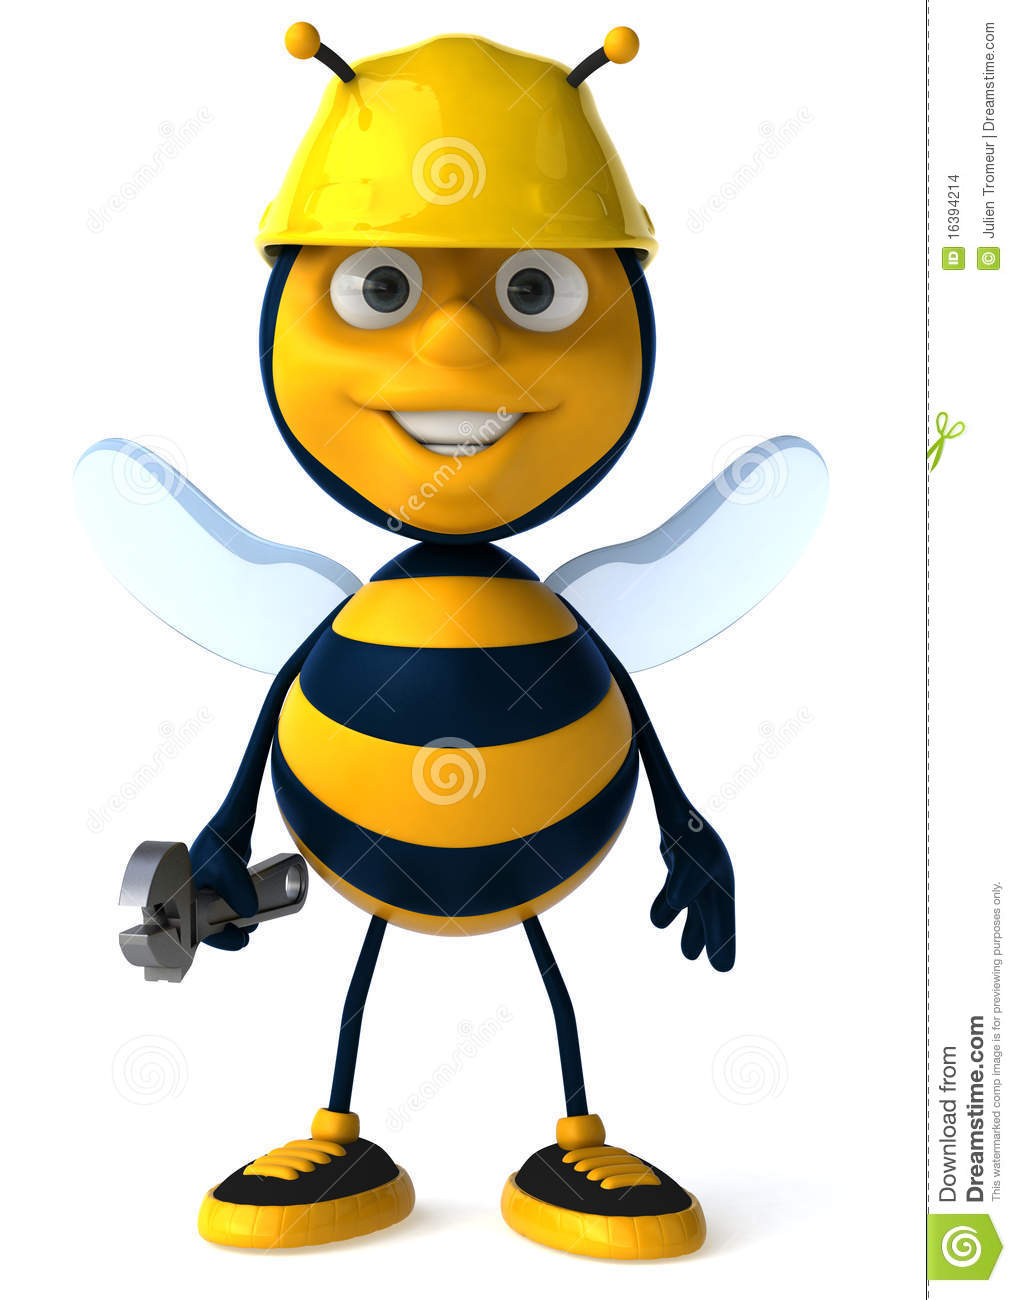 Working Bee Stock Images - Image: 16394214